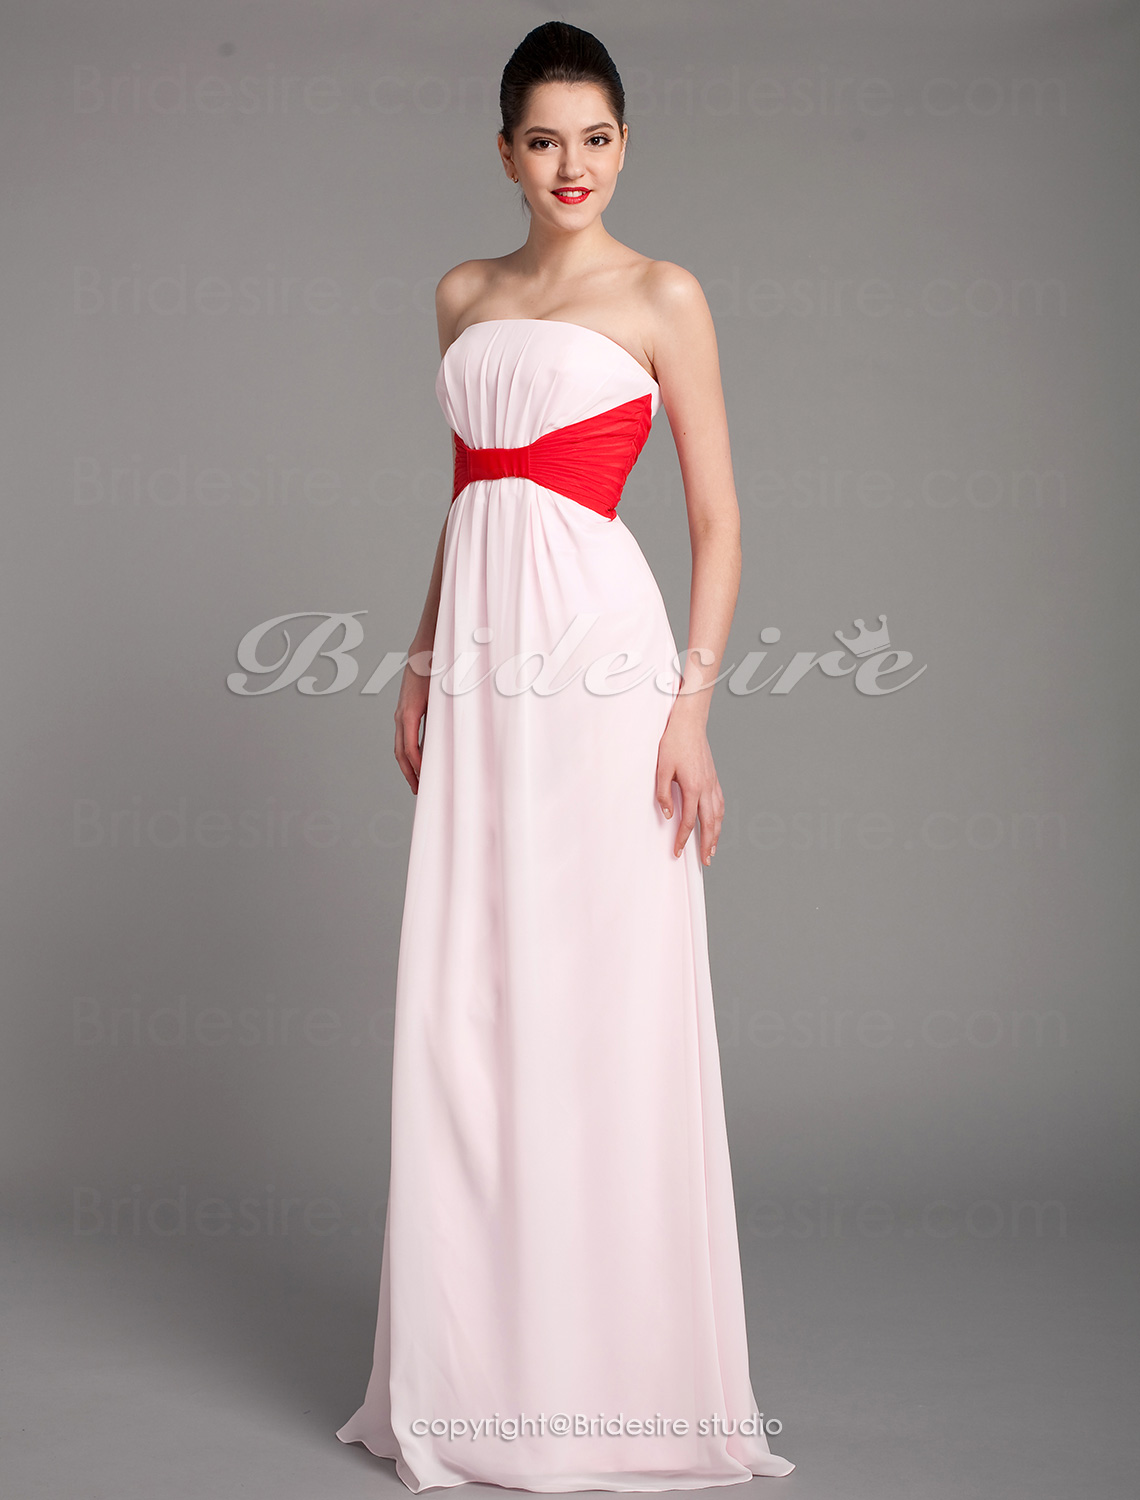 Sheath/Column Chiffon Floor-length Straps Bridesmaid Dress with Removale Straps